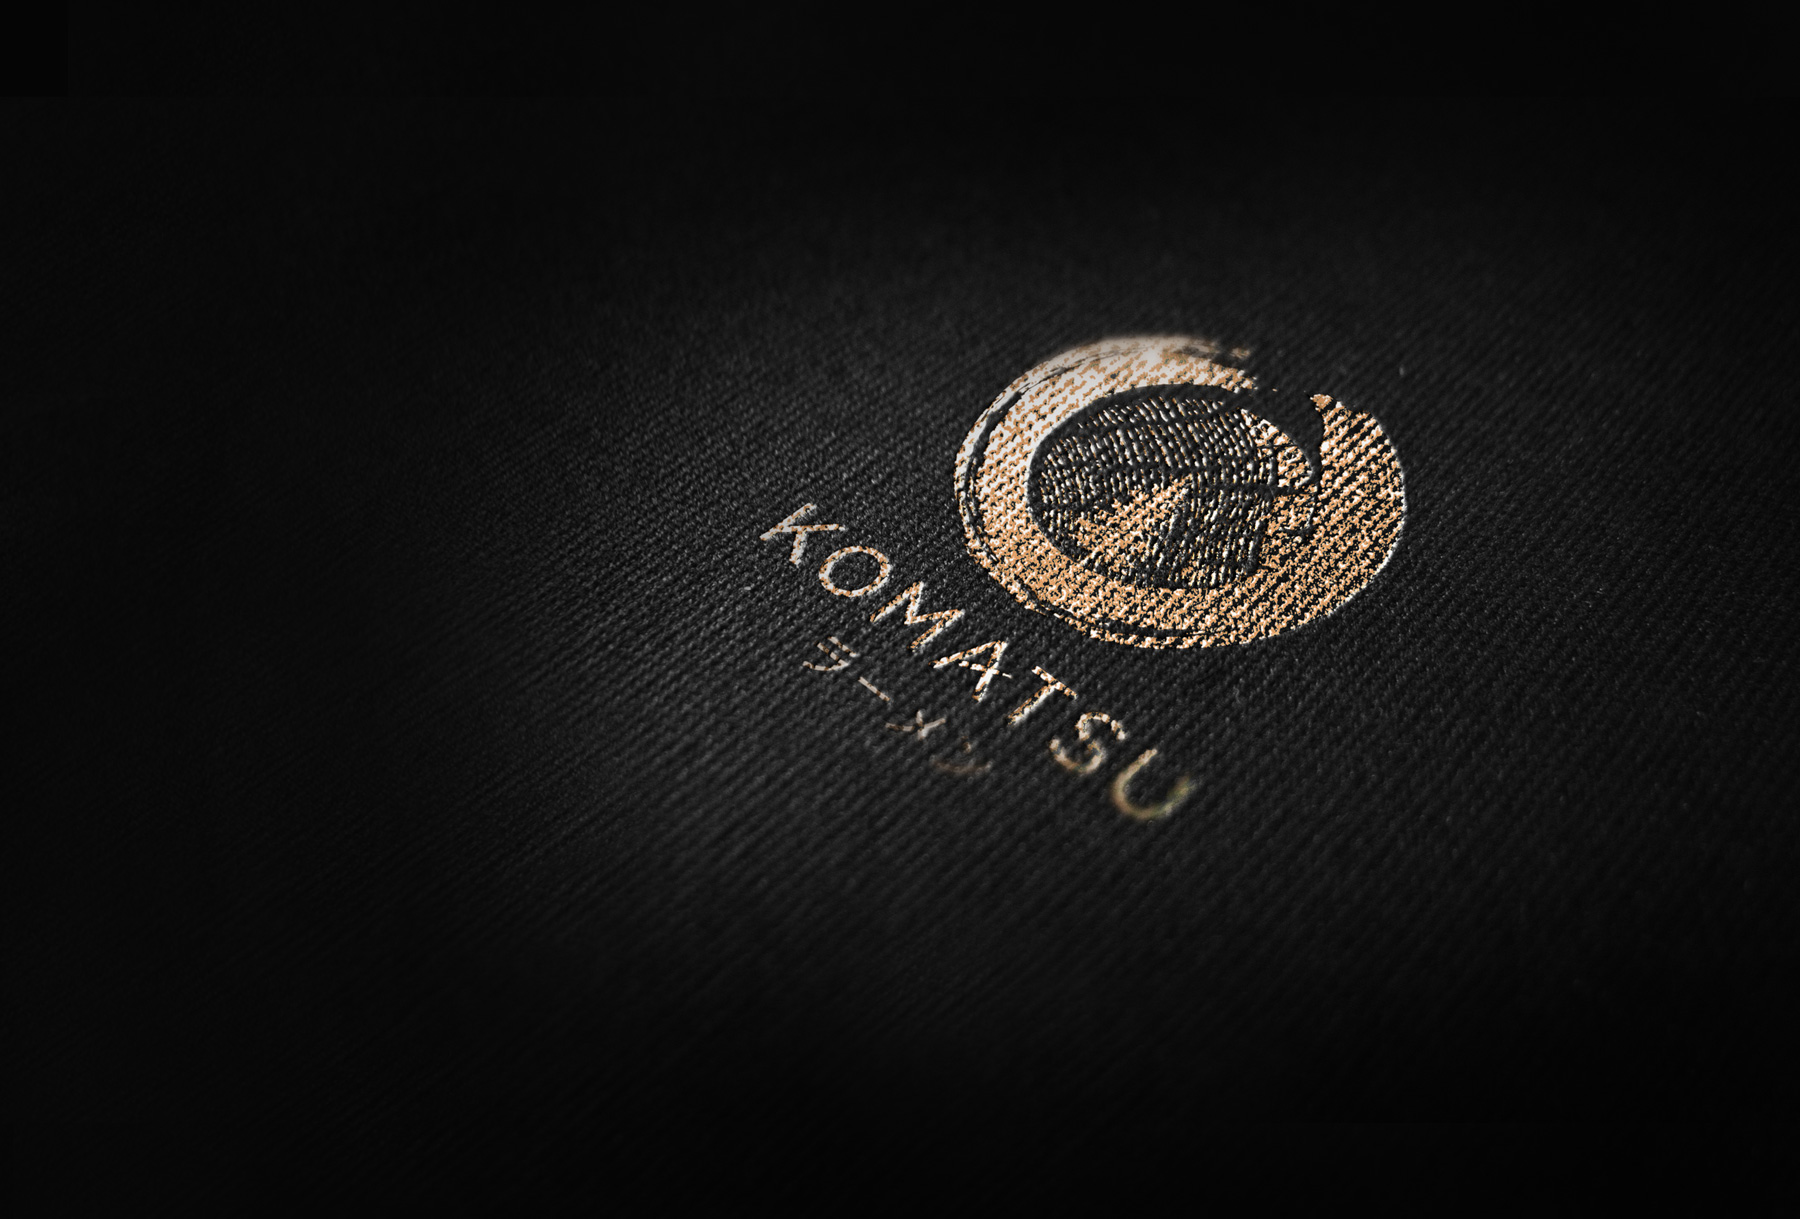 Komatsu-Logo-Brand-Consulting-and-Development